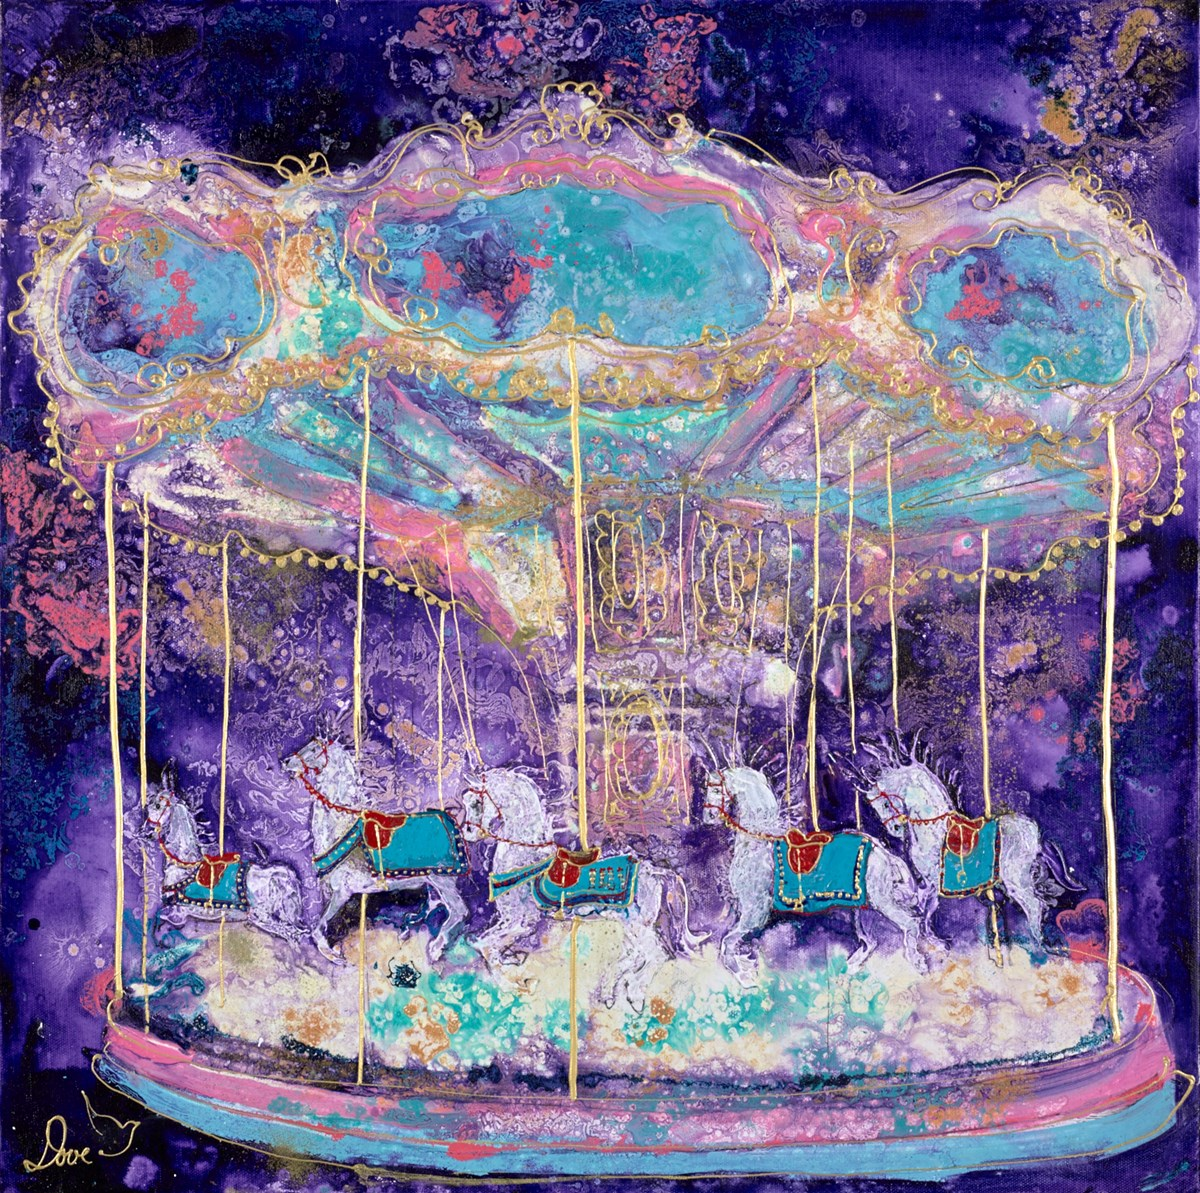 Magical Carousel  by katharine dove -  sized 24x24 inches. Available from Whitewall Galleries